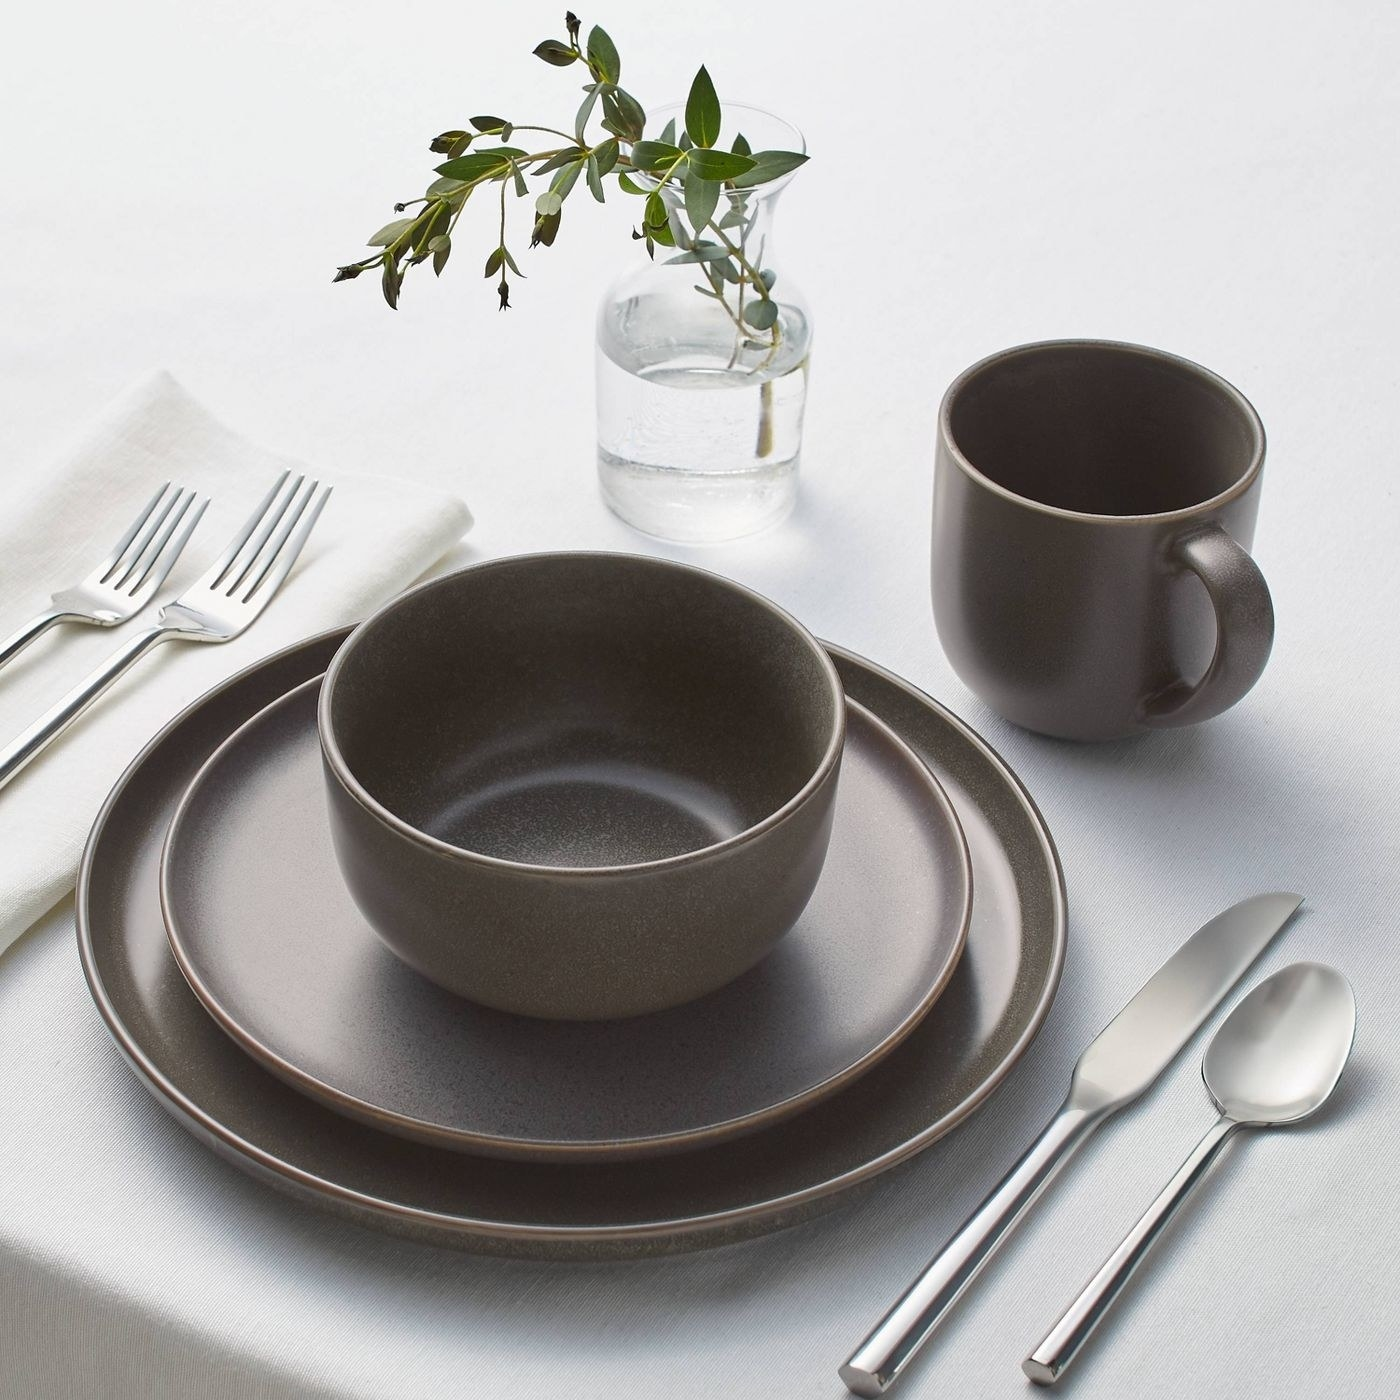 black and gold dinnerware set with two plates a bowl and a mug